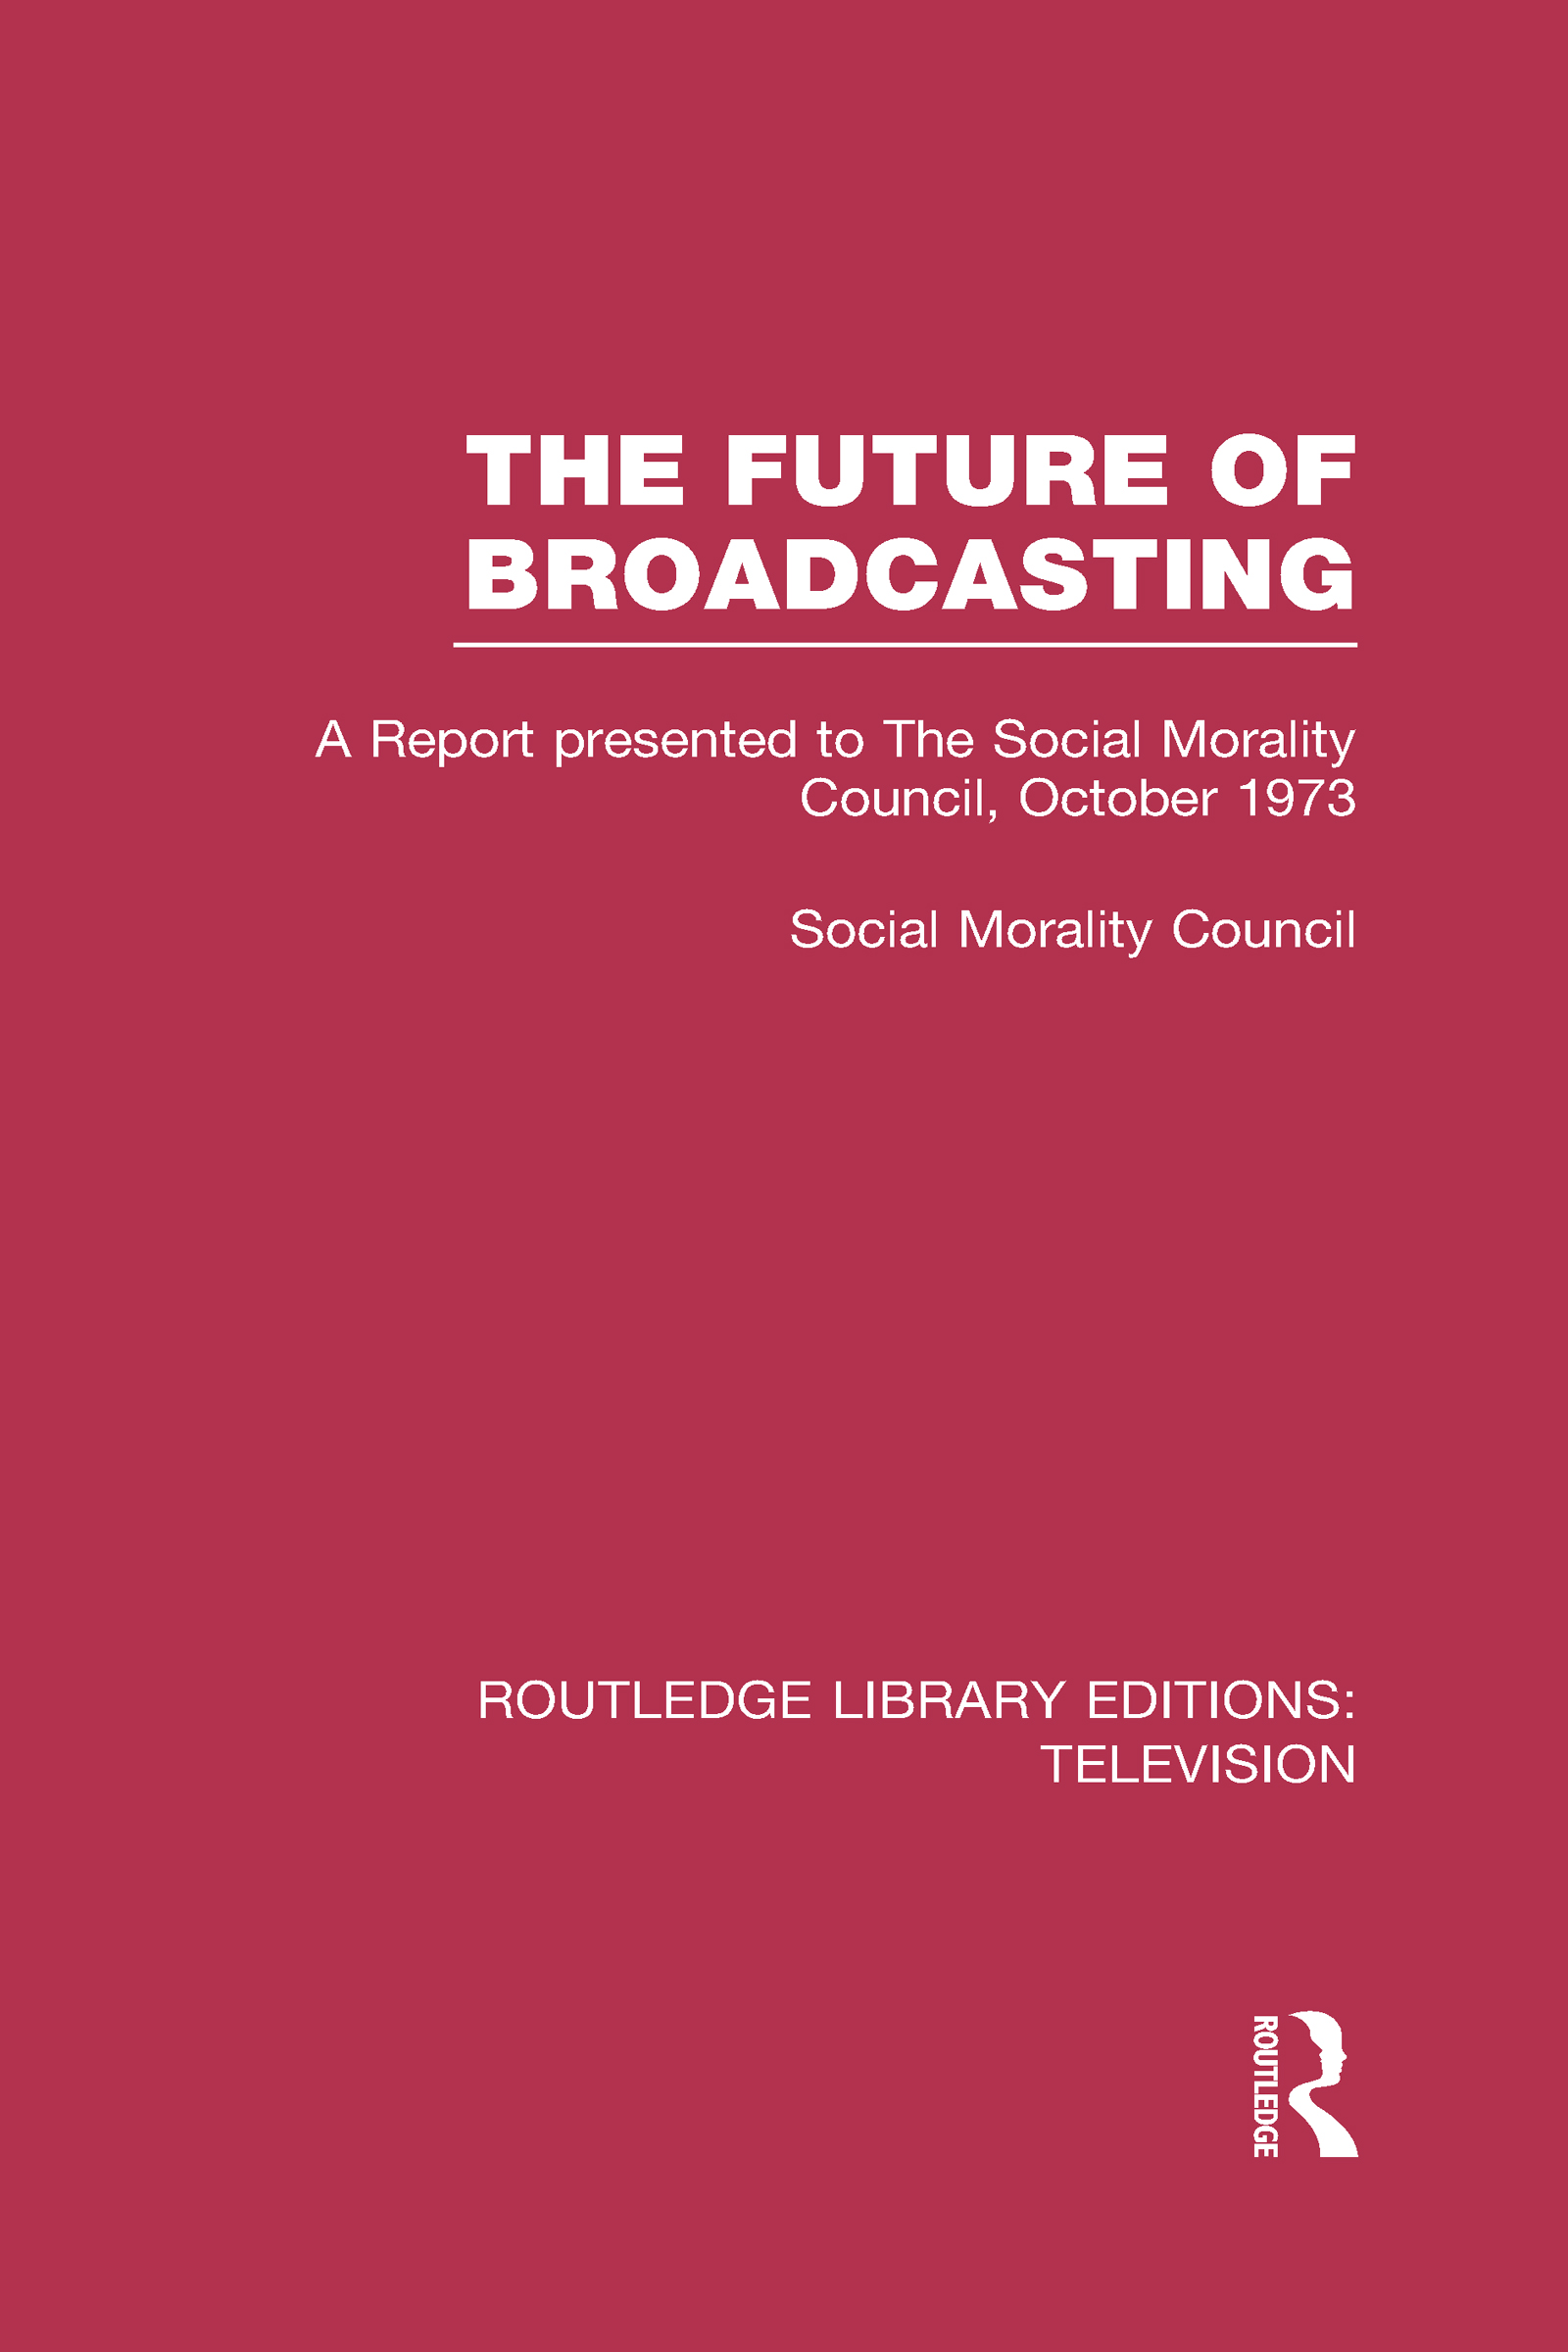 The Future of Broadcasting: A Report Presented to the Social Morality Council, October 1973 book cover